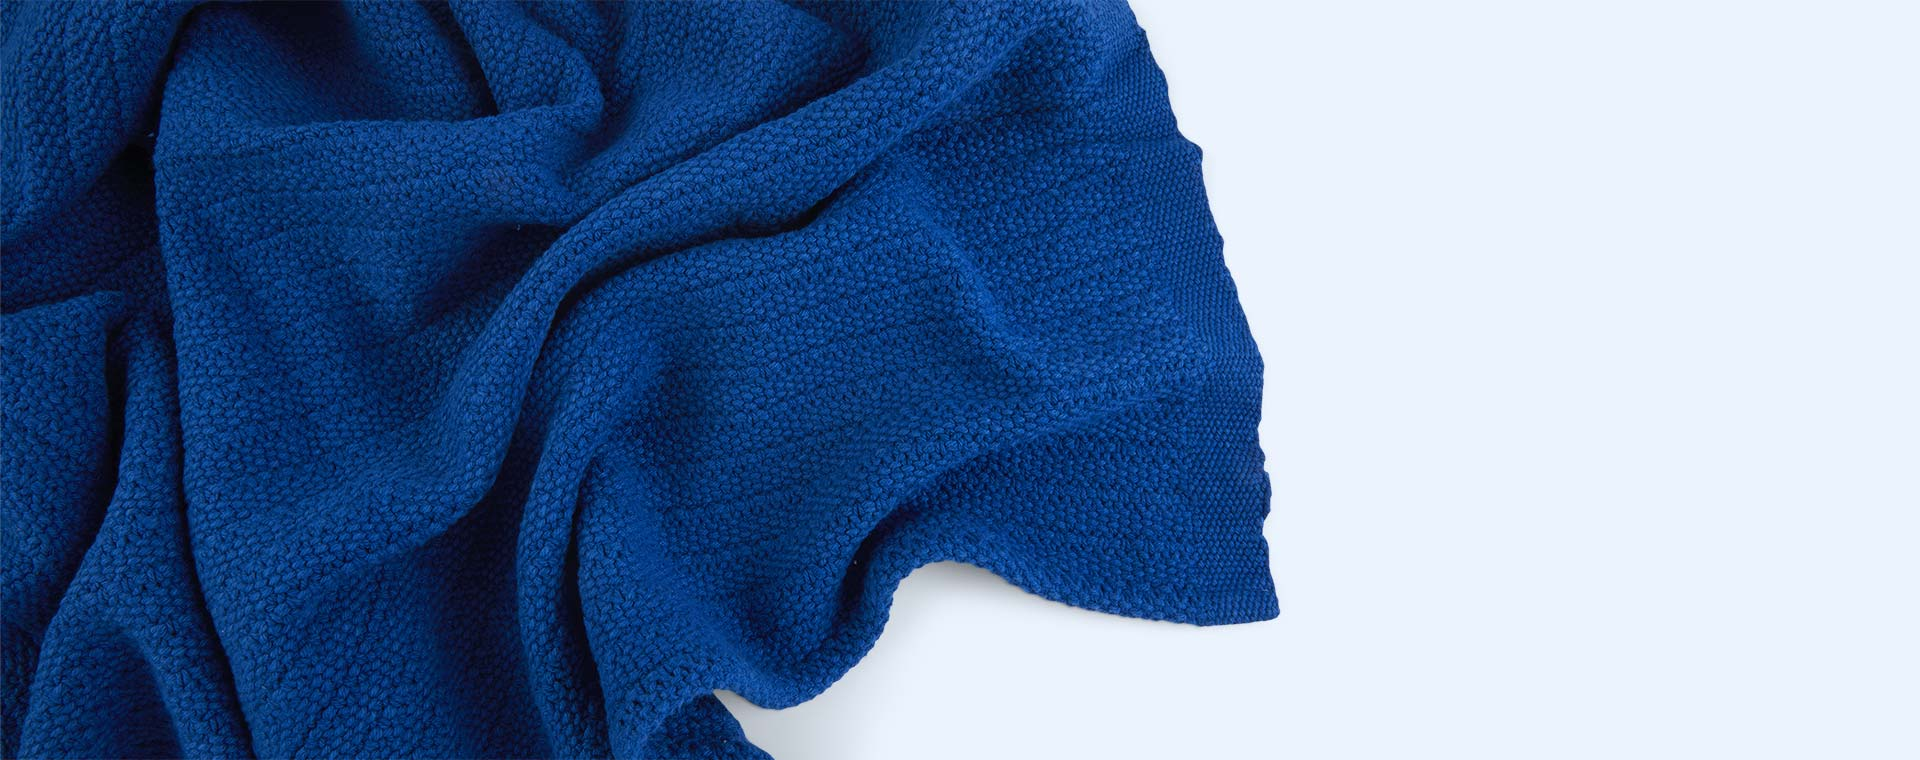 Classic Blue Hippychick Cellular Baby Blanket